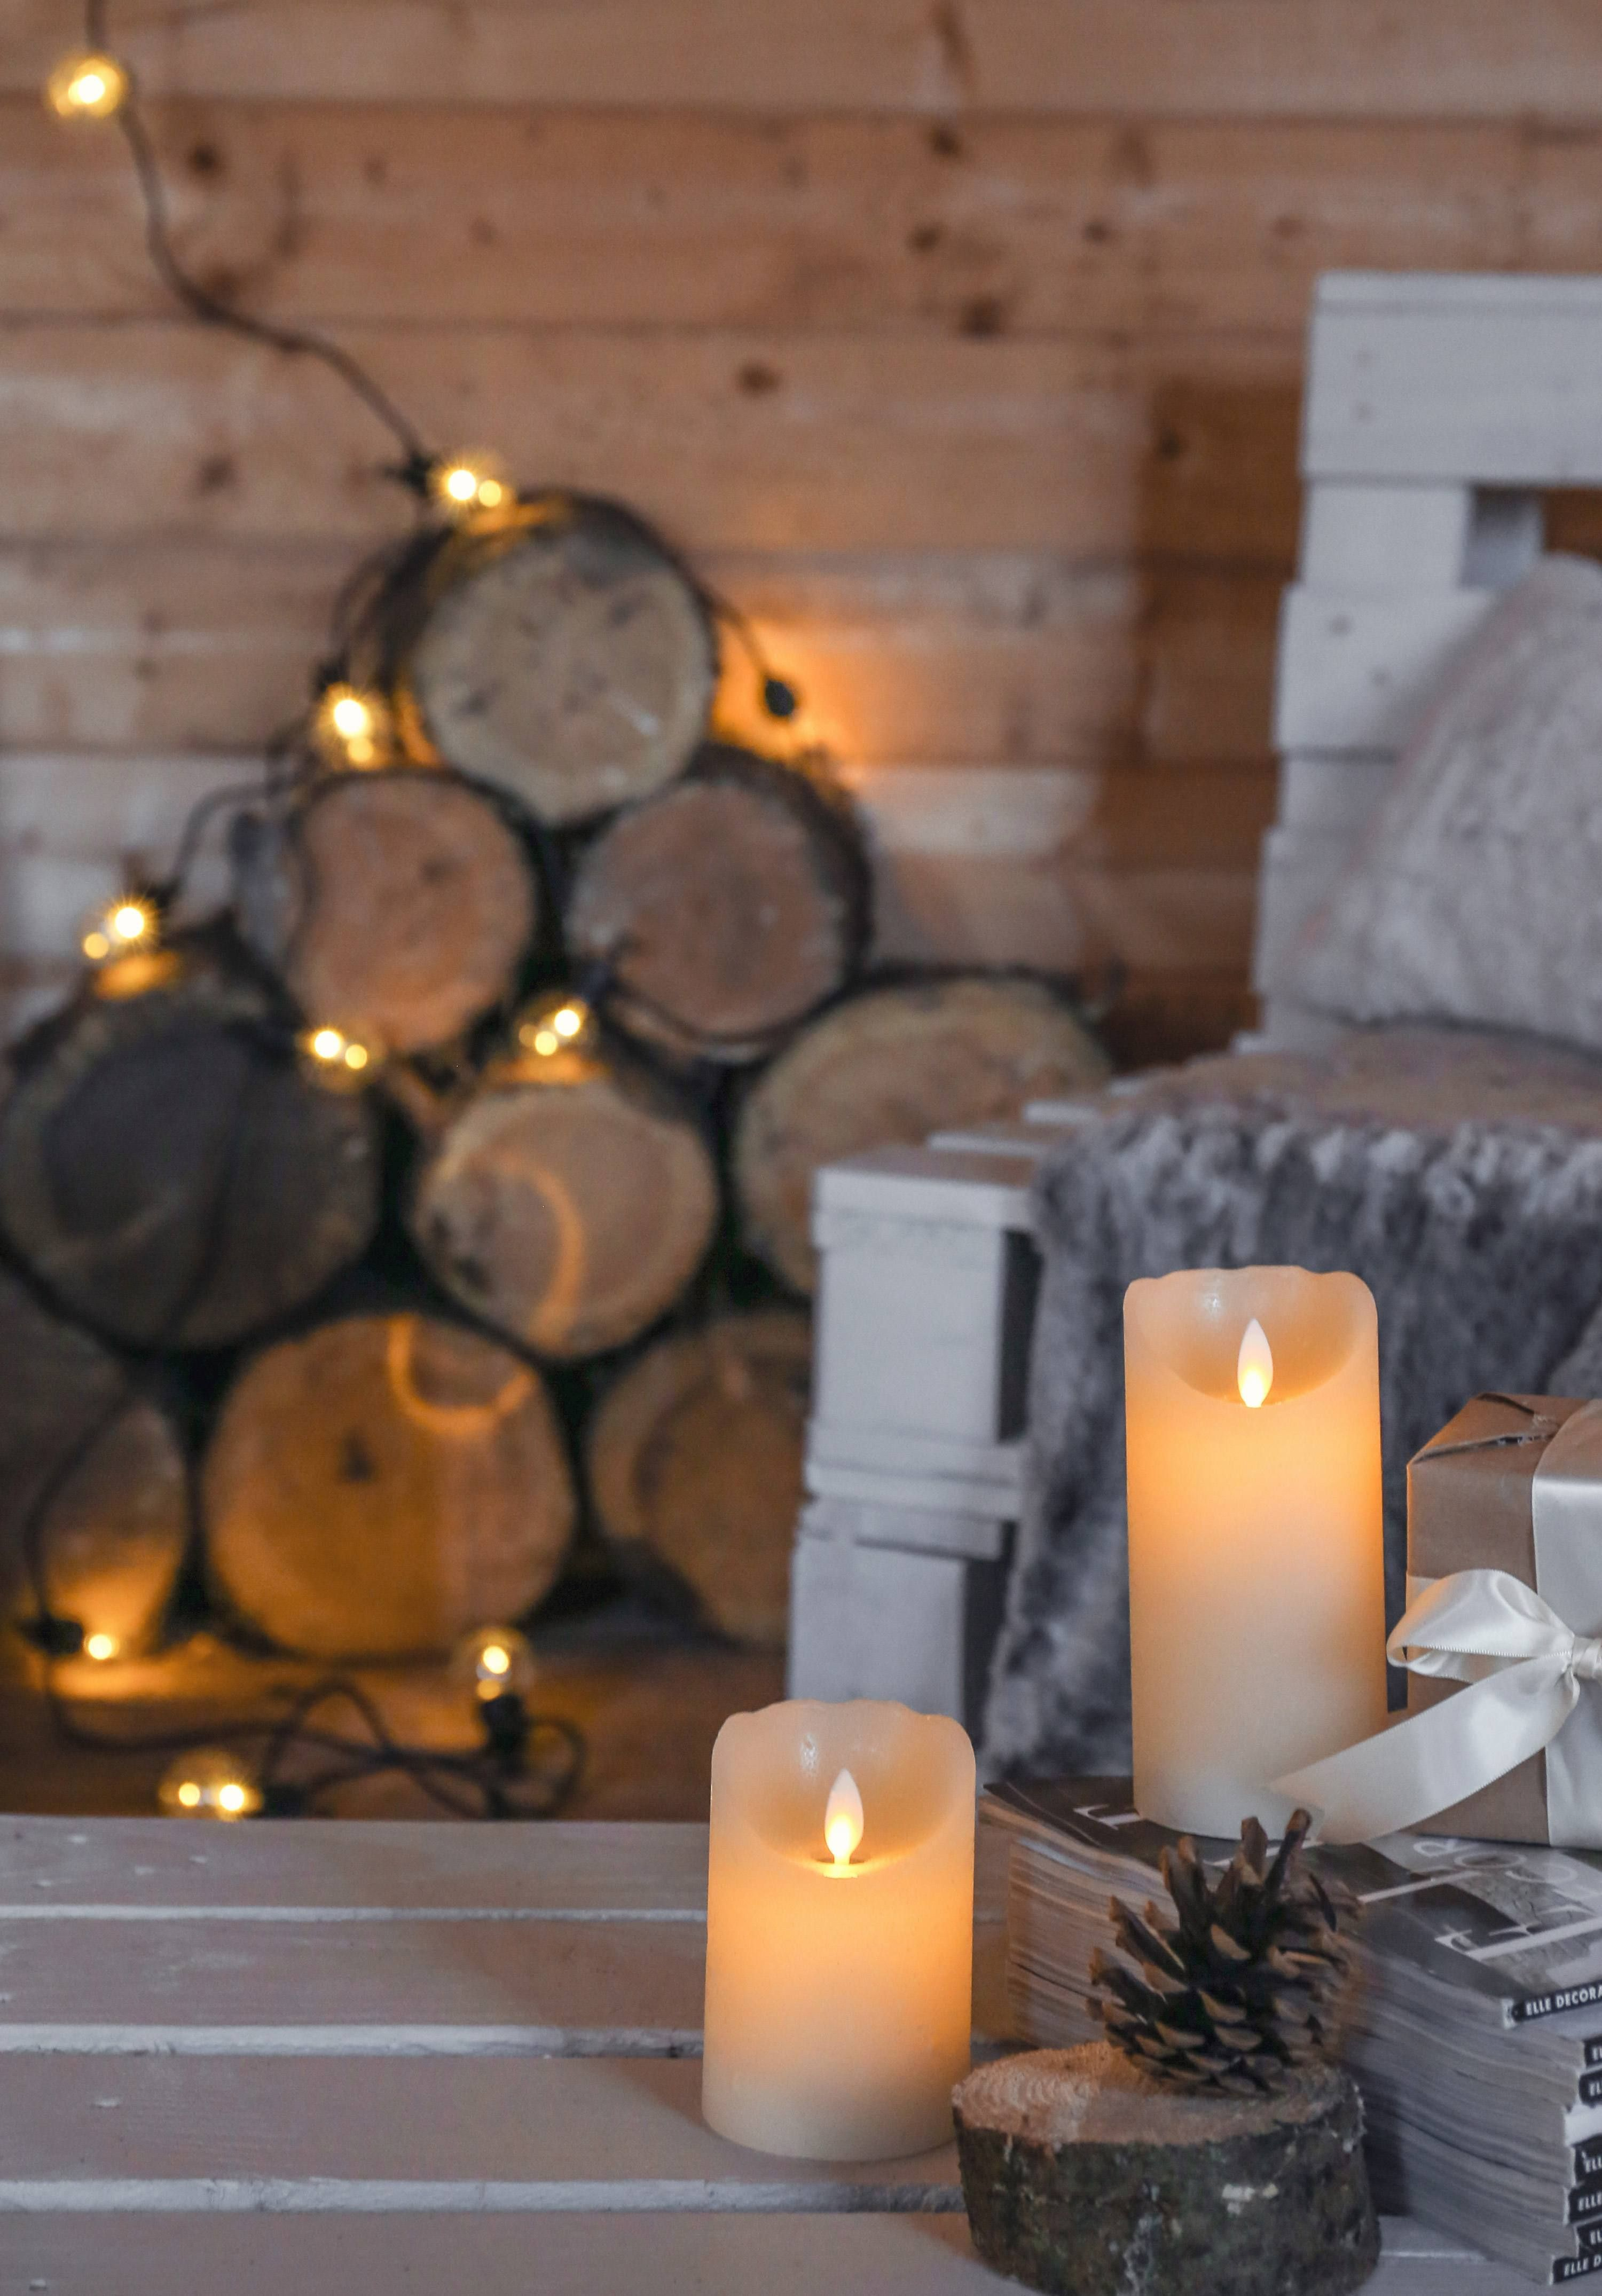 The Danish Art Of Hygge Is The Perfect Philosophy To Adopt